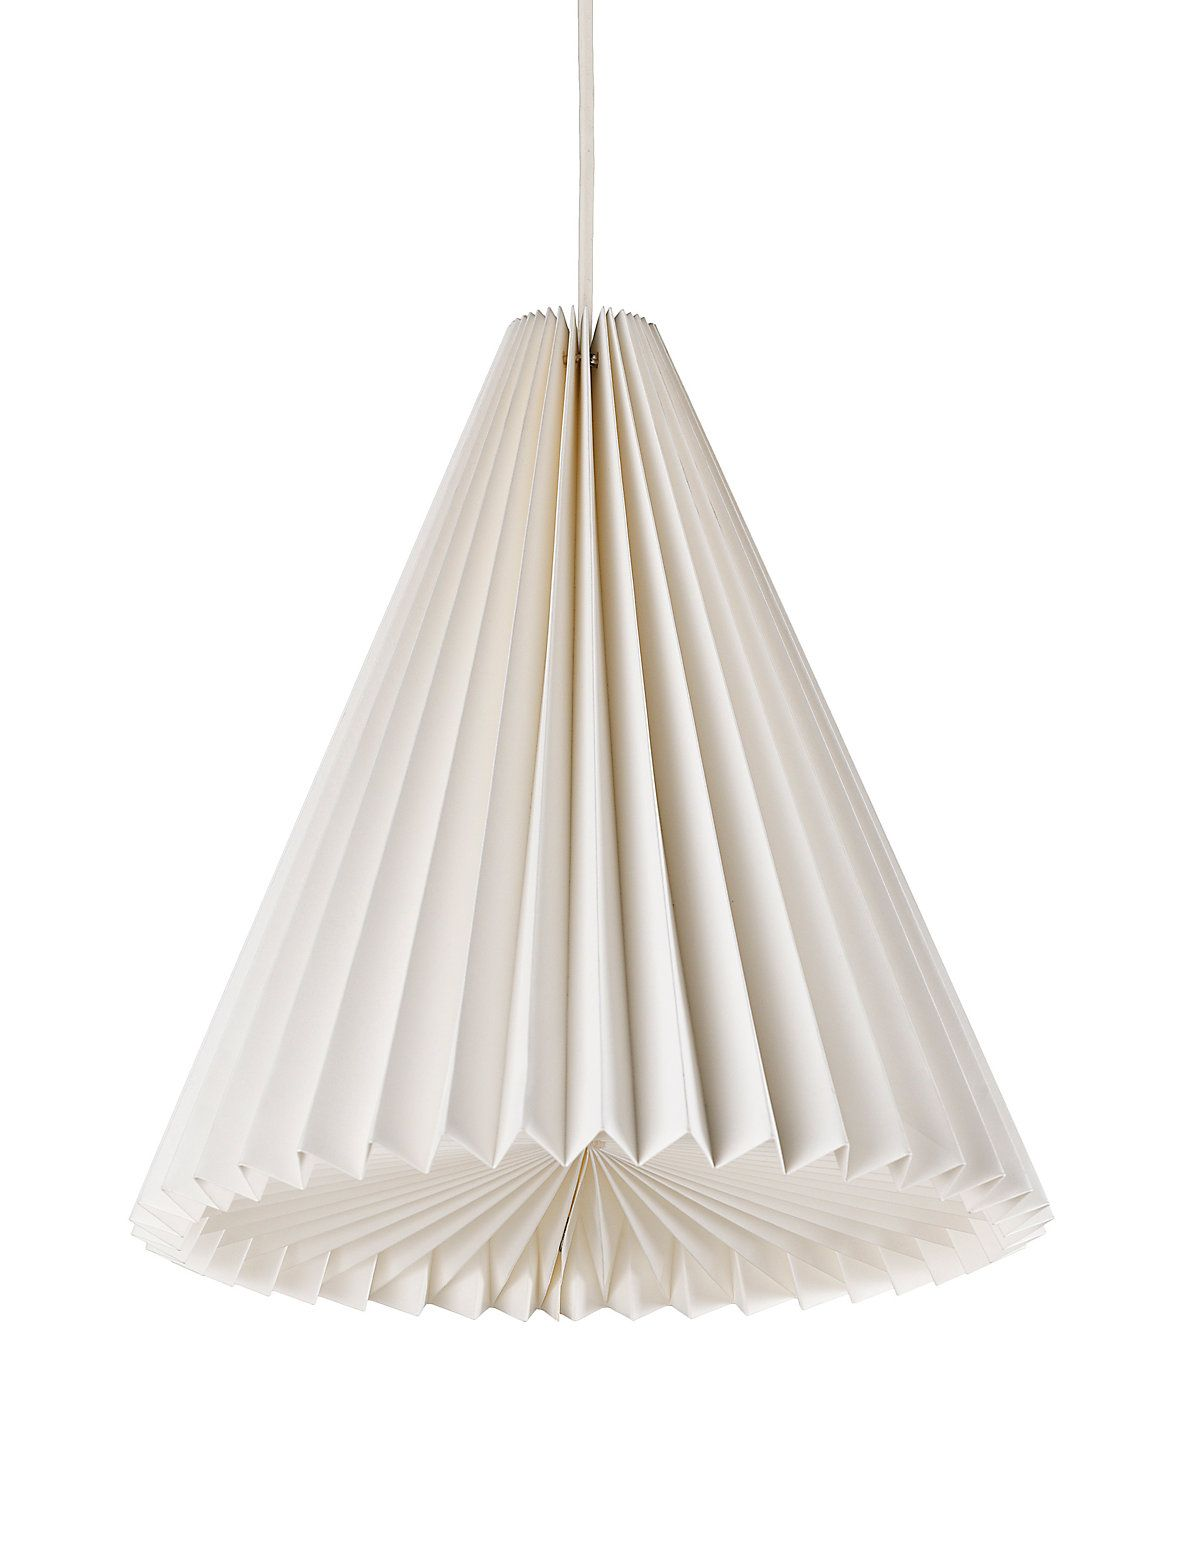 Folding cone paper ceiling lamp shade ms 45 lamp pinterest folding cone paper ceiling lamp shade ms 45 mozeypictures Images